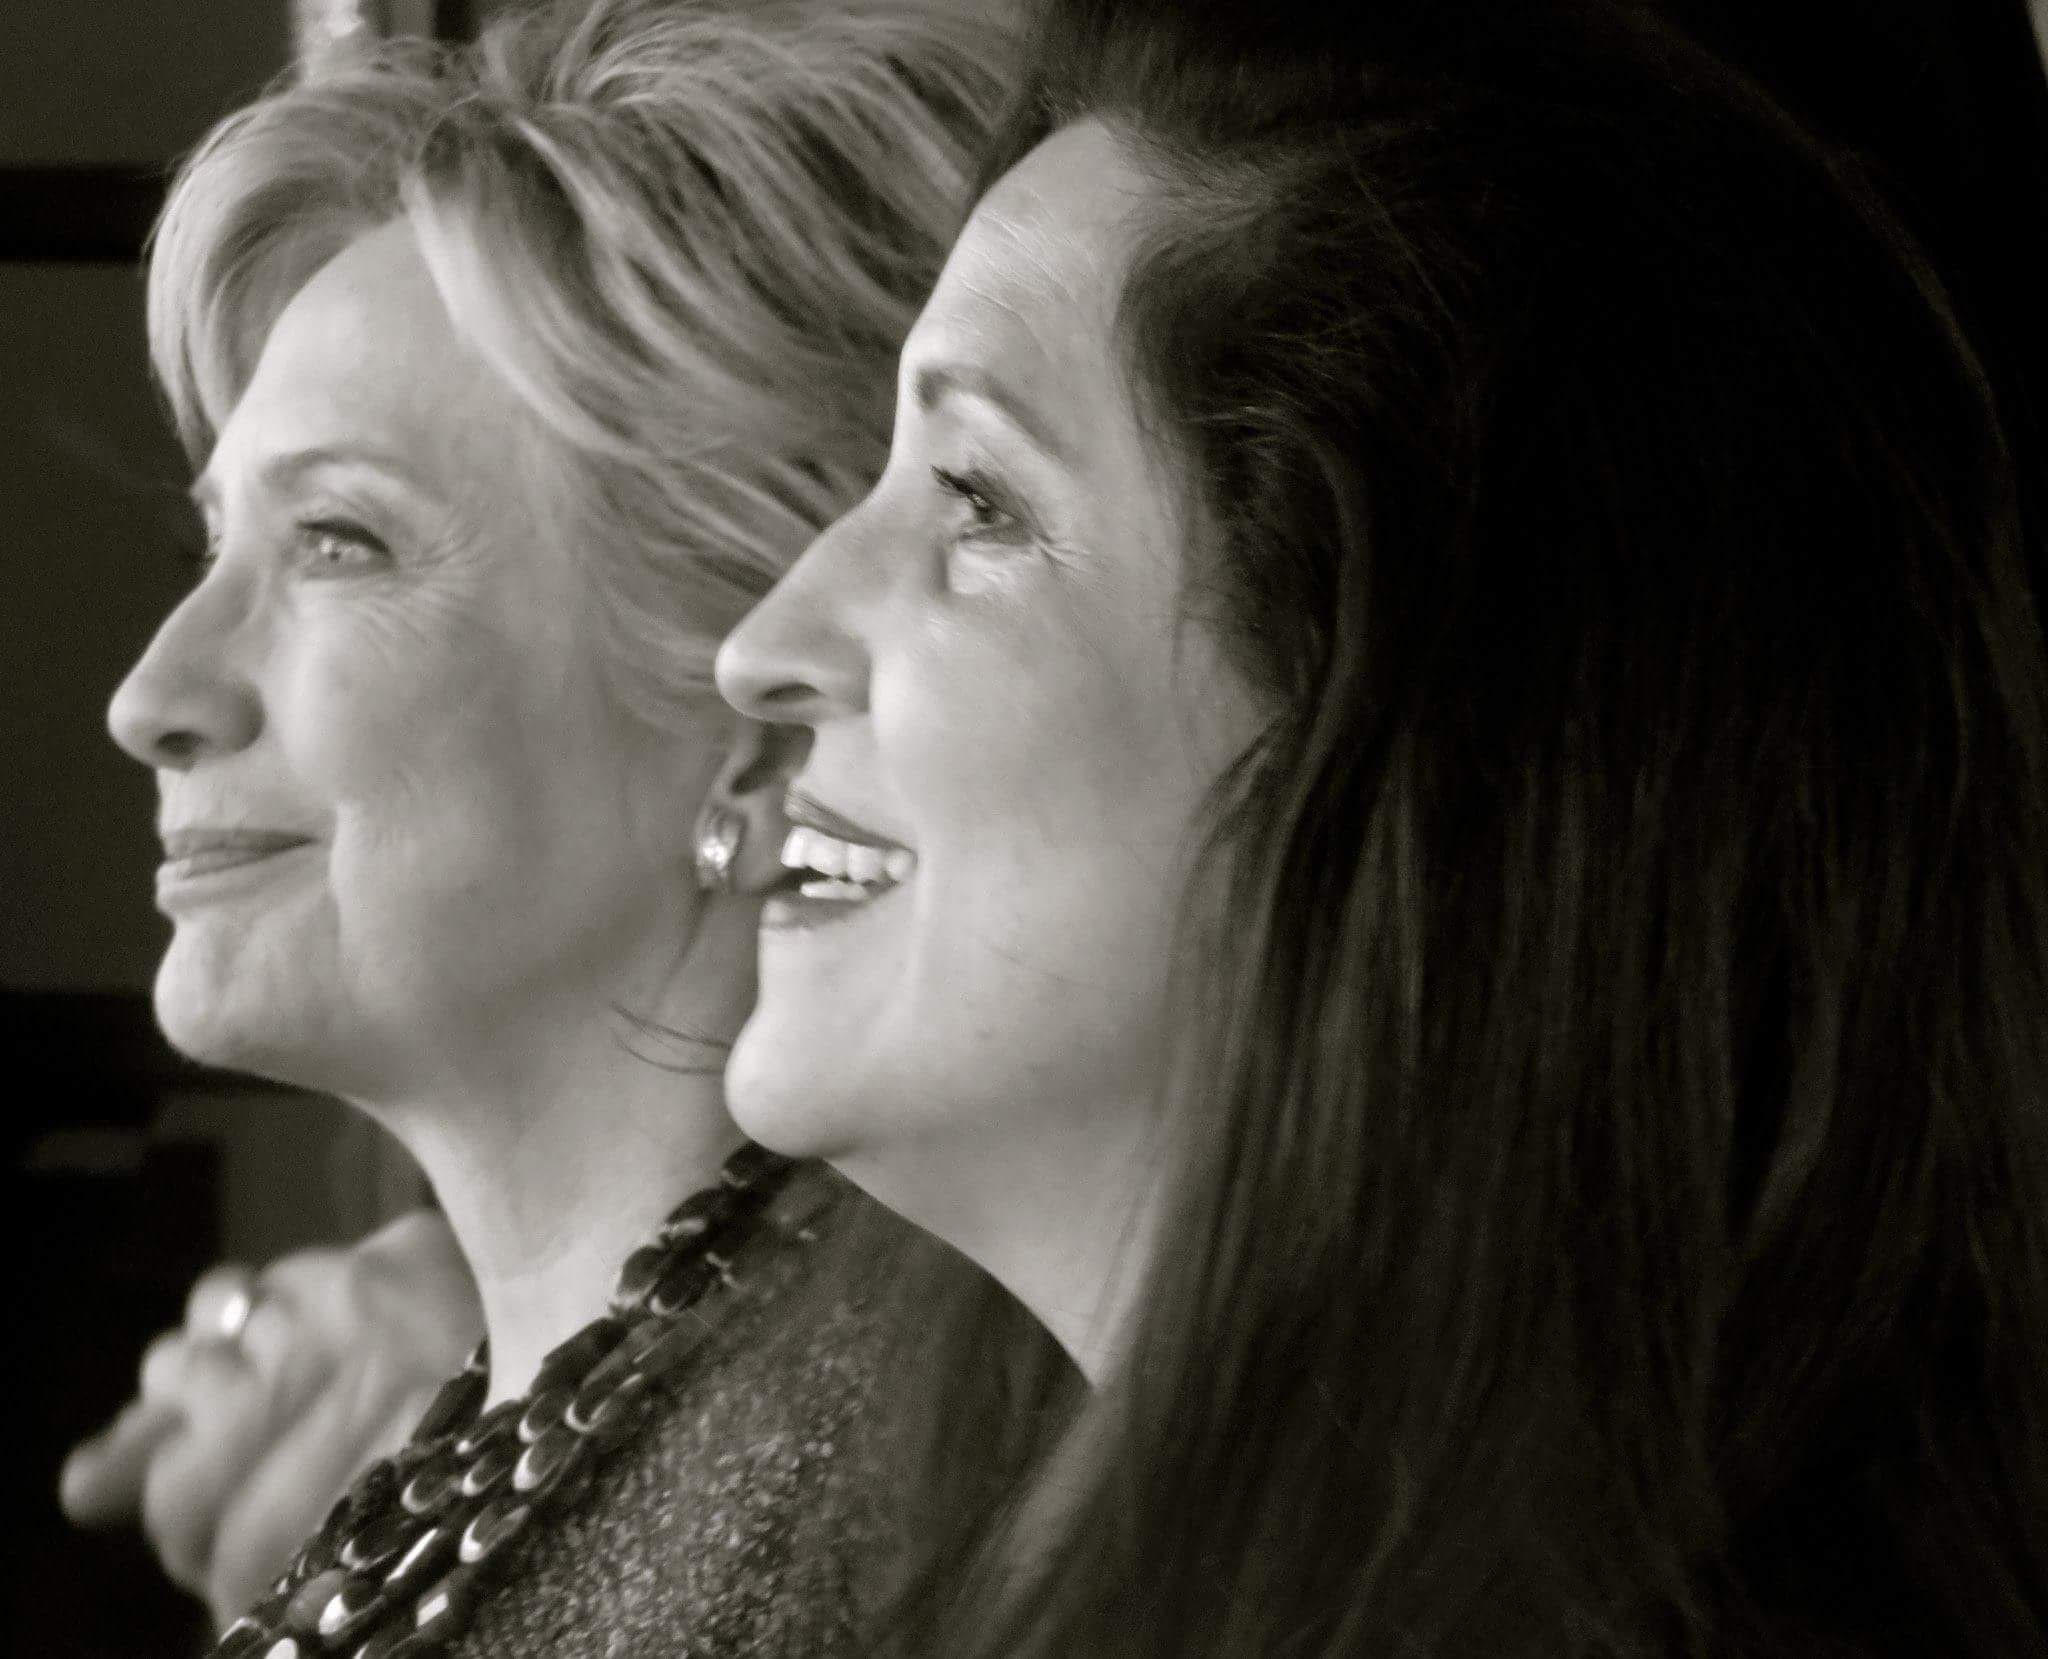 Cynthia Telles and Hillary Clinton